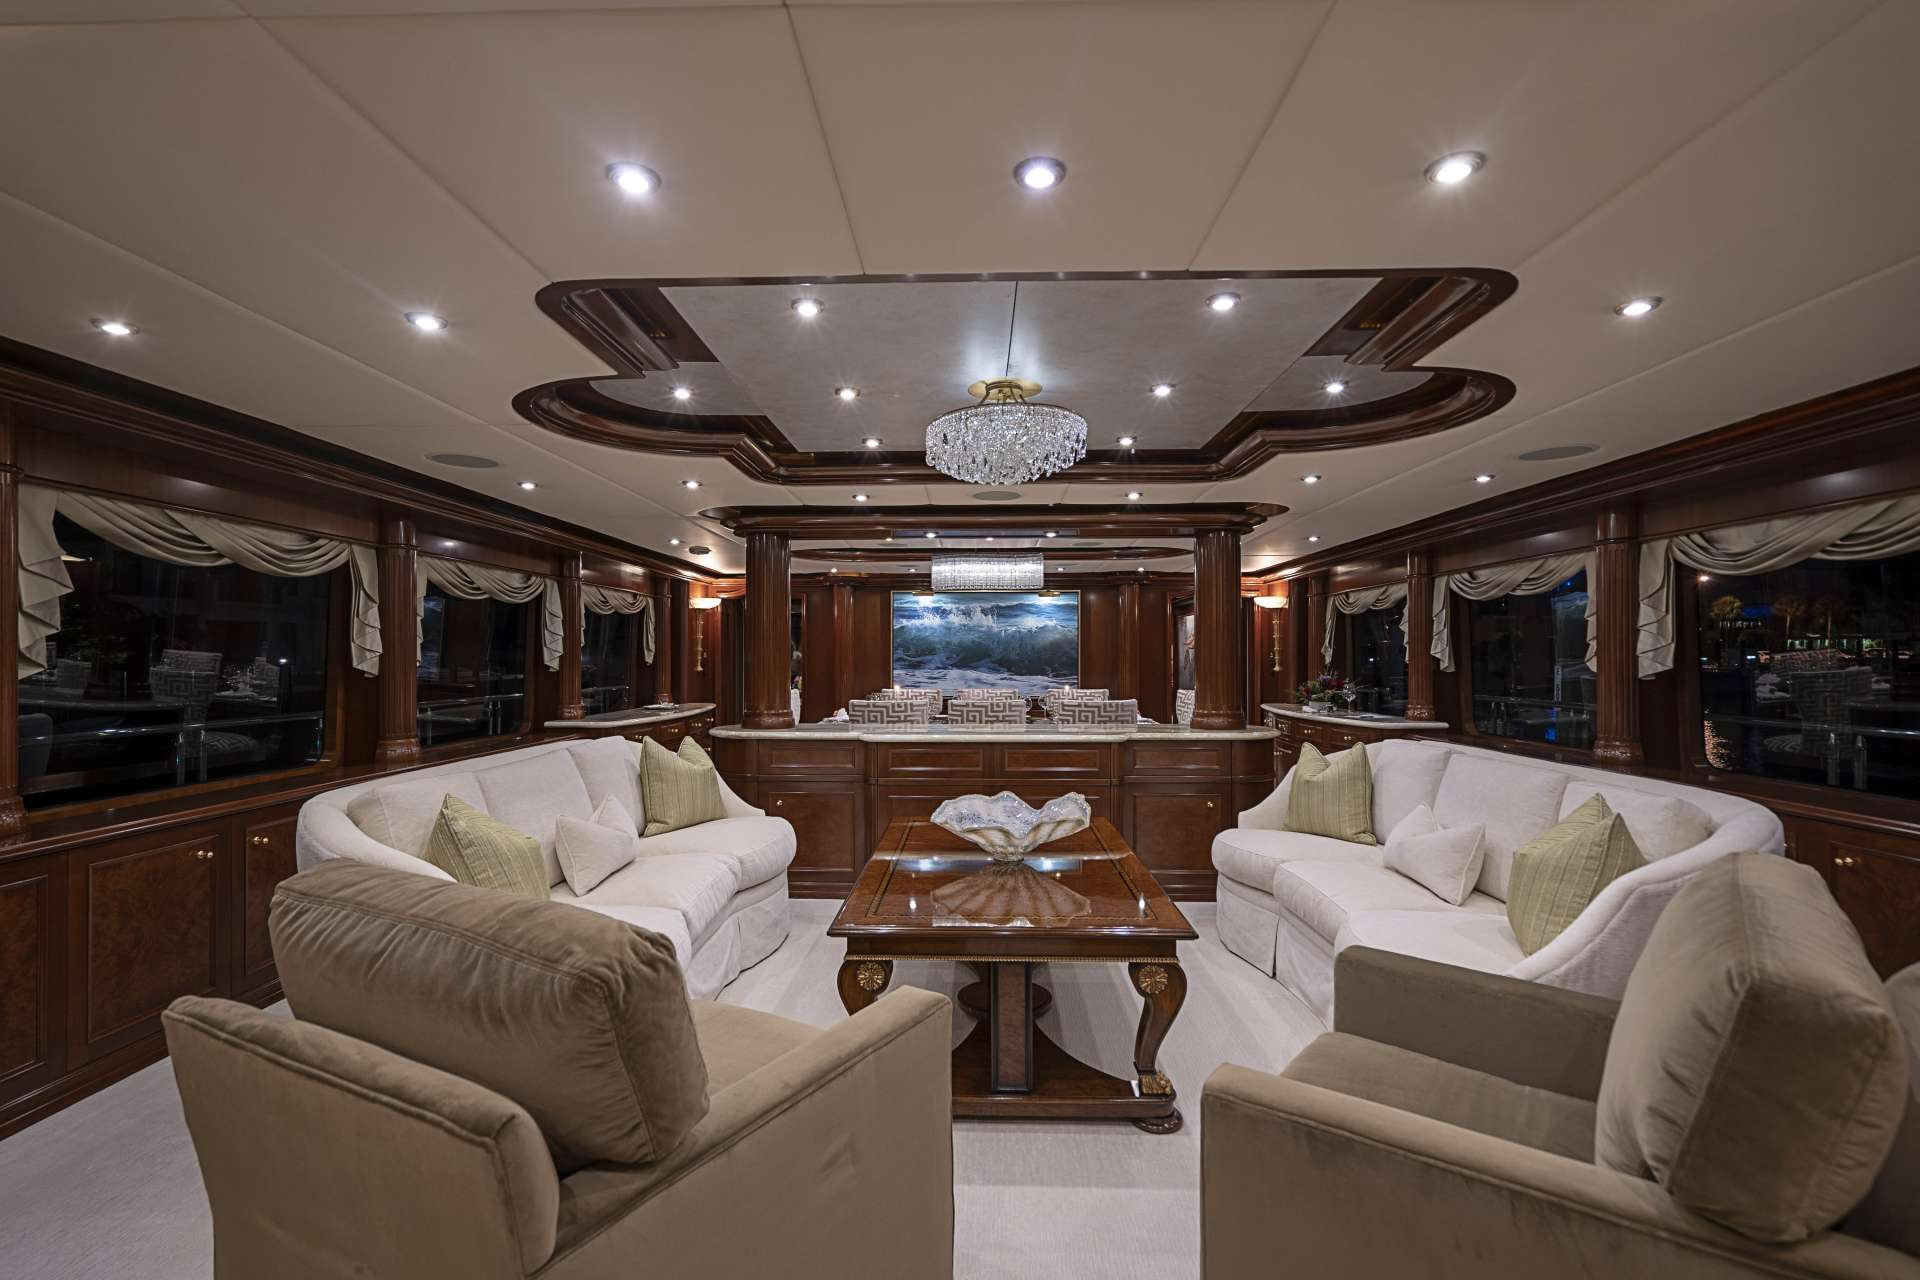 Power Yacht 'Power', 10 PAX, 8 Crew, 142.00 Ft, 43.00 Meters, Built 2010, Trinity Yacht, Refit Year 2018